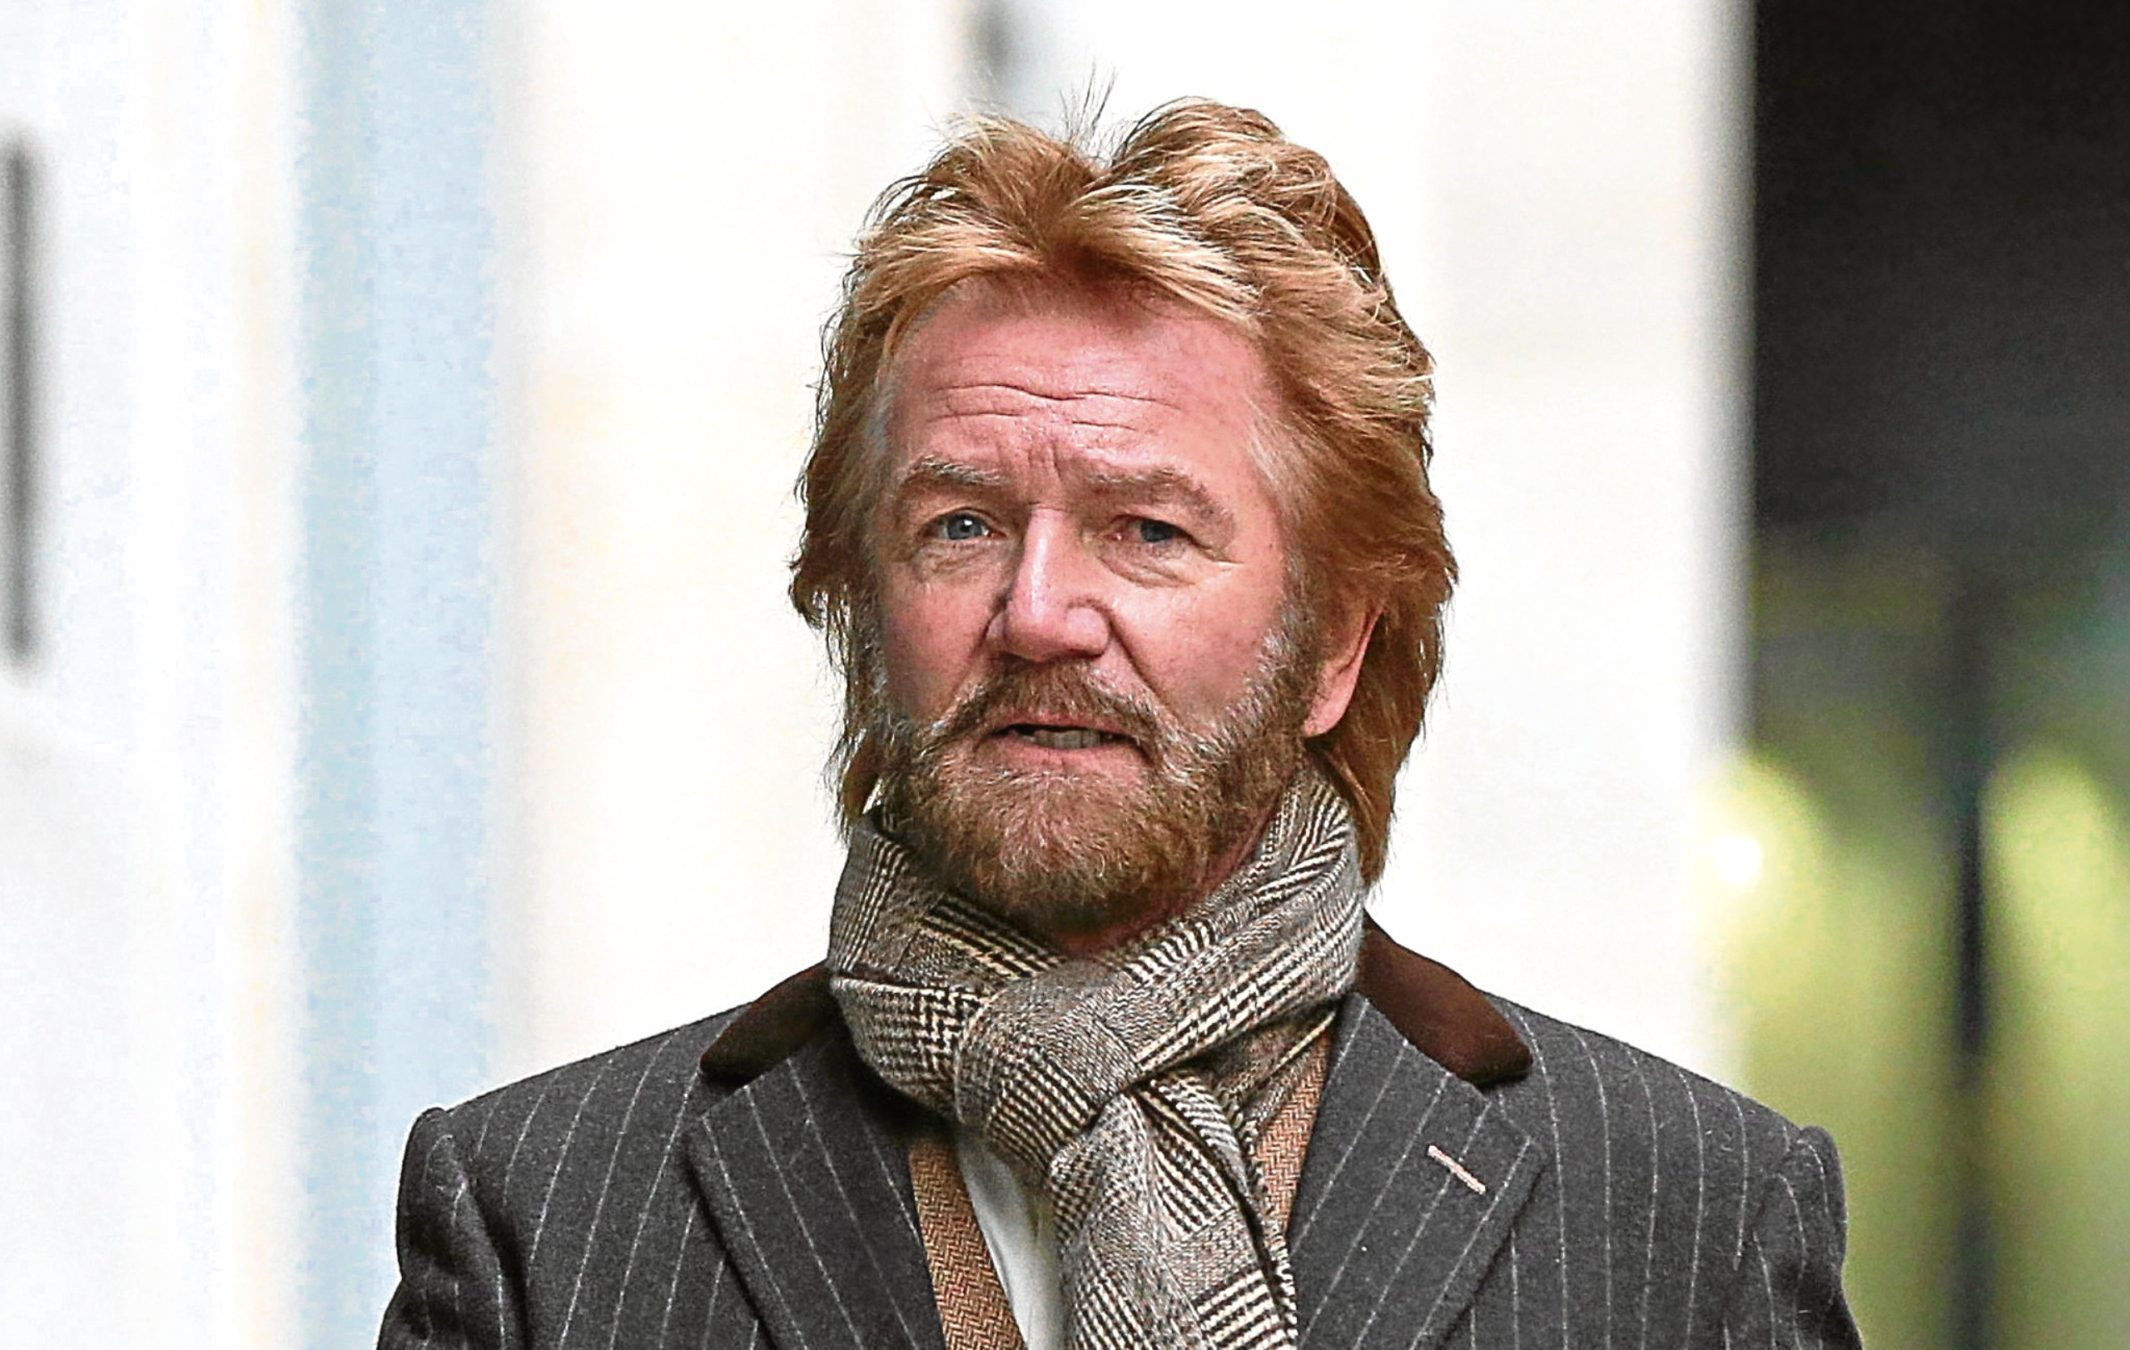 File photo dated 29/11/17 of Noel Edmonds, who has secured litigation funding to pursue Lloyds through the courts as he seeks up to £60 million in compensation from the banking giant. PRESS ASSOCIATION Photo. Issue date: Wednesday January 31, 2018. The former Deal Or No Deal presenter is seeking financial redress from the lender after falling victim to fraud by former staff at HBOS Reading, which Lloyds rescued at the height of the financial crisis. See PA story CITY Edmonds. Photo credit should read: Jonathan Brady/PA Wire